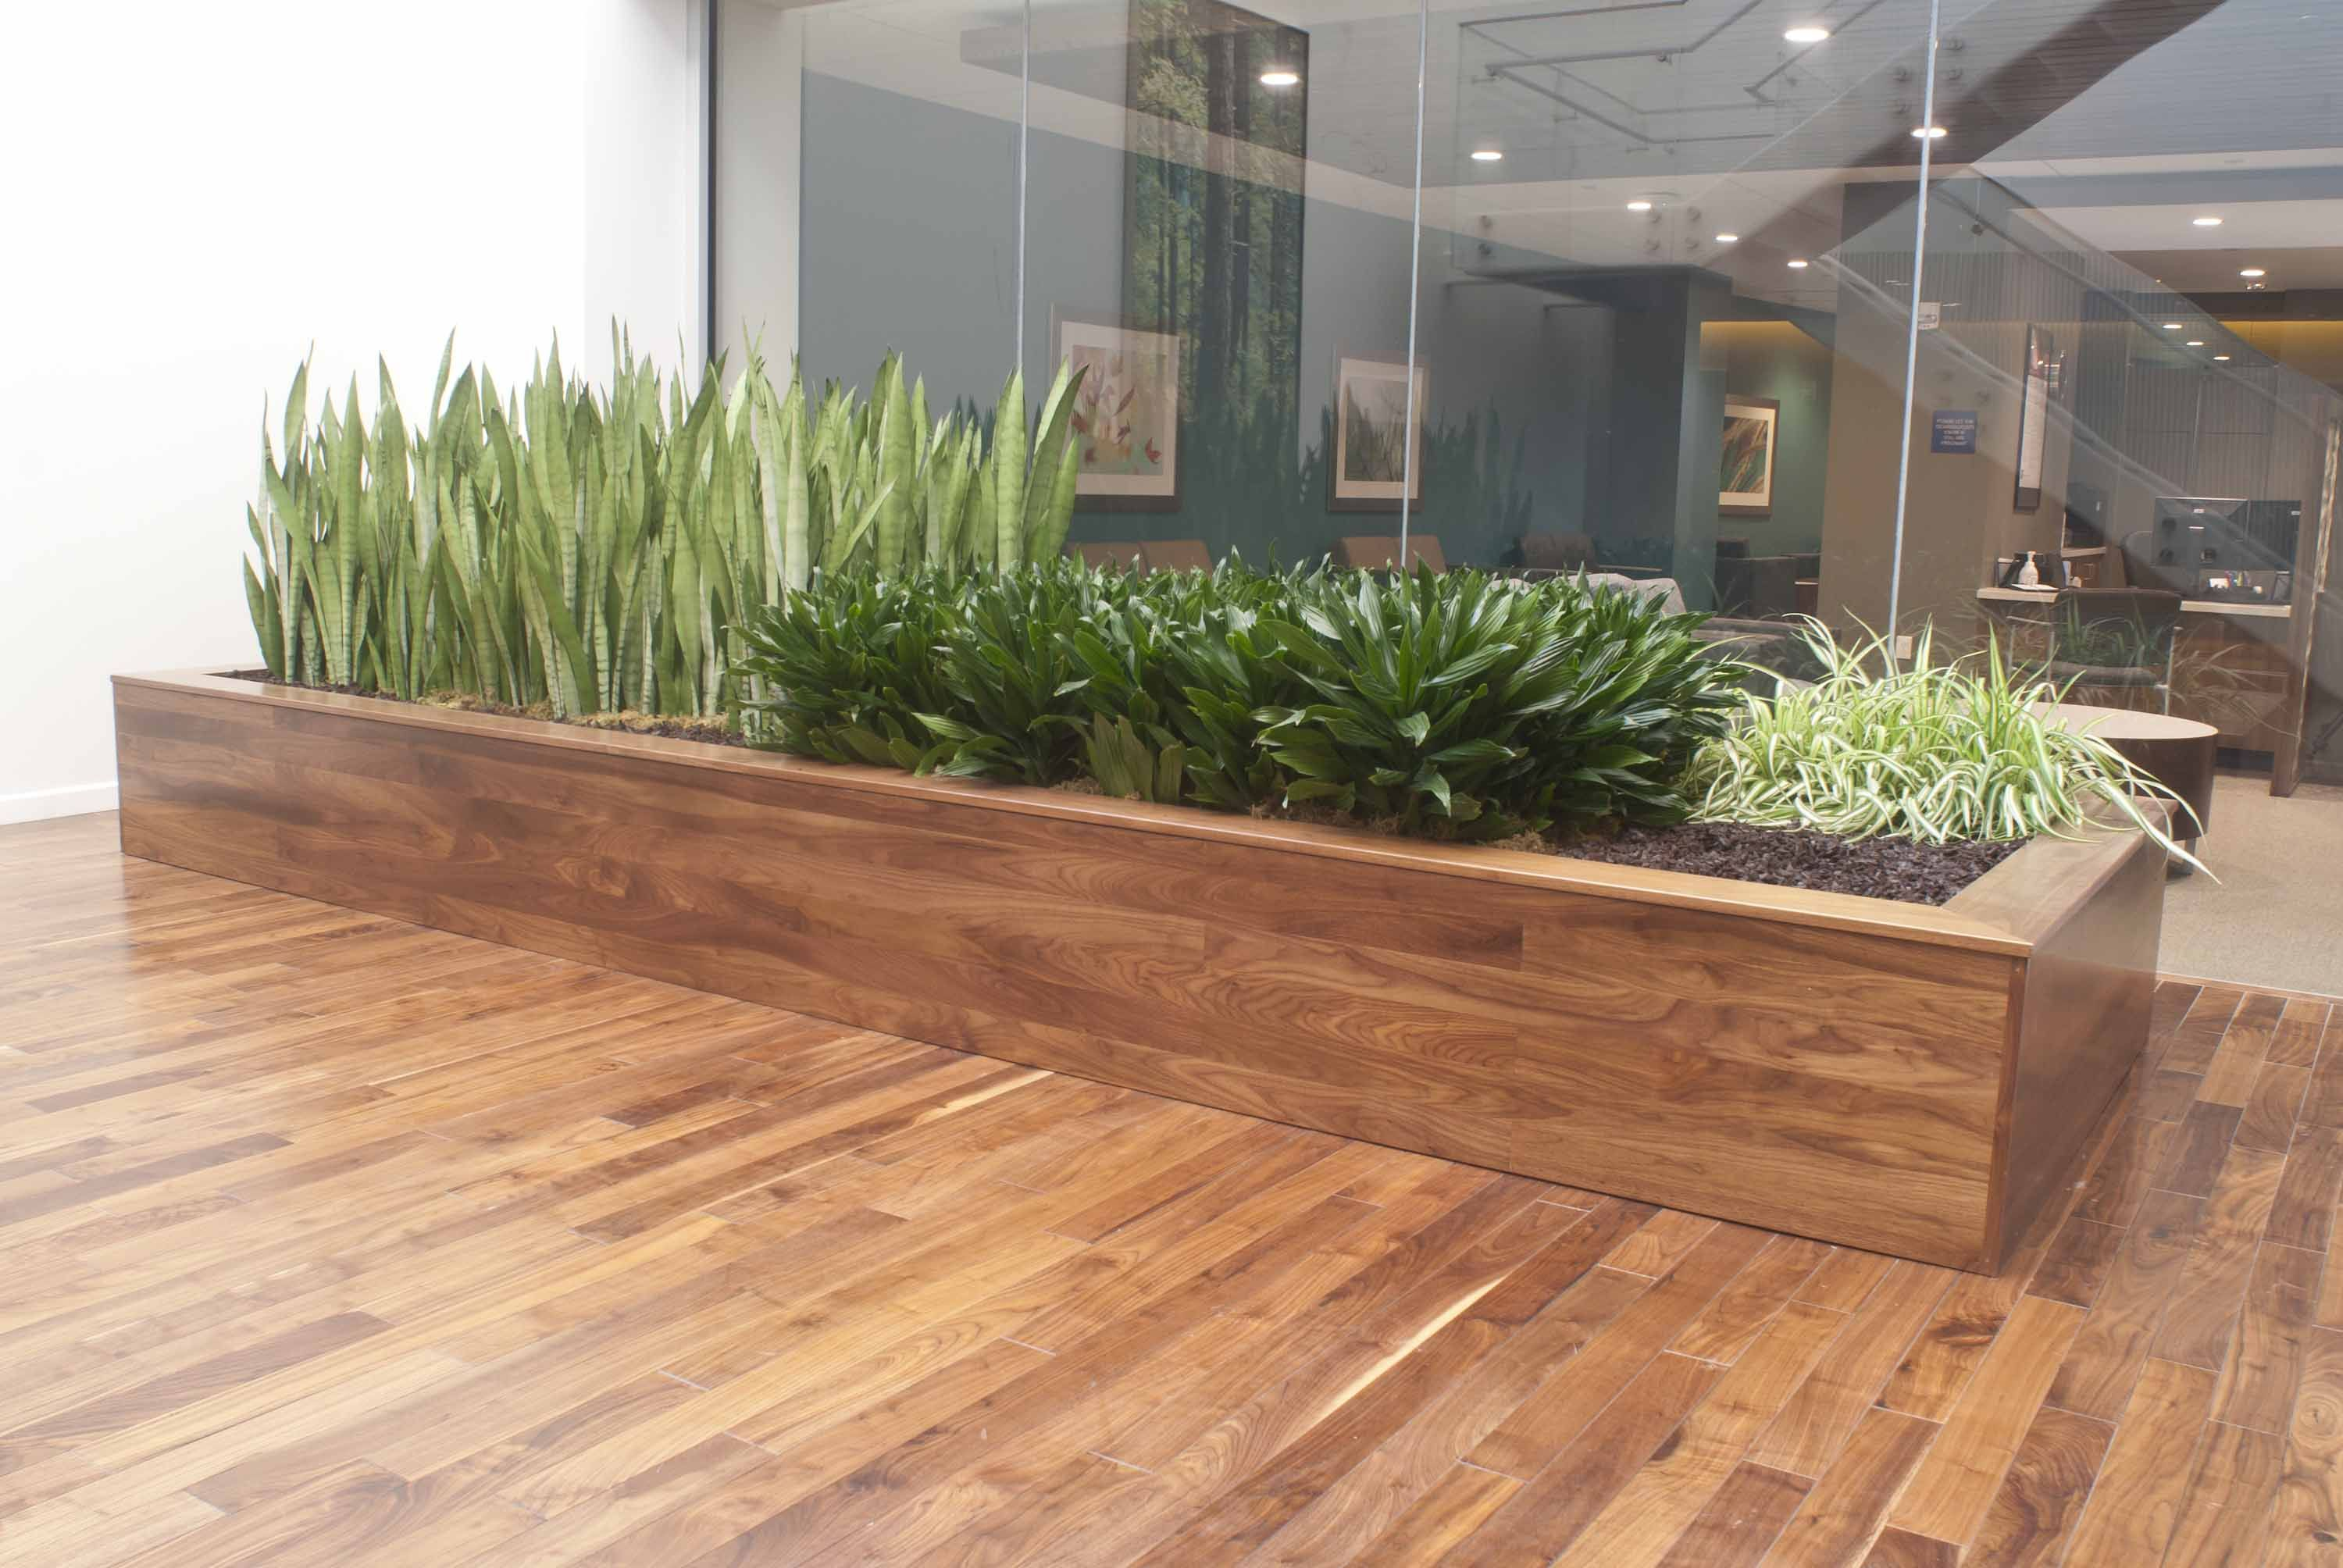 Corporate interior landscaping services engledow group